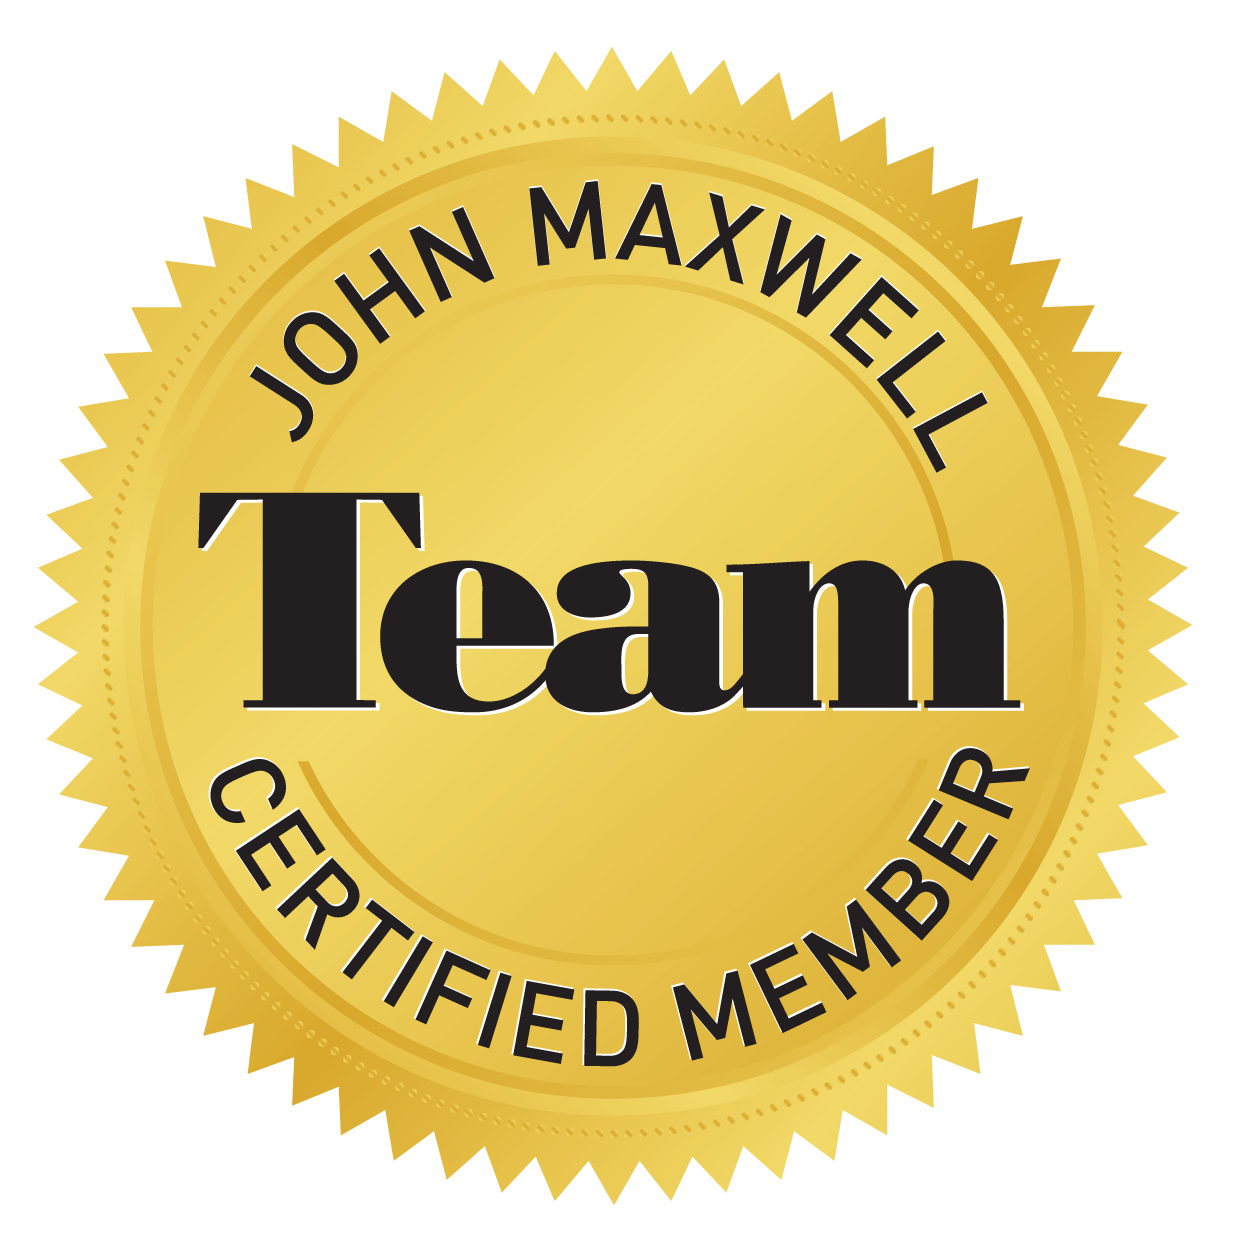 Dr. John E. N. Daniel (Doctor Jay!) is a John Maxwell Team Certified Speaker